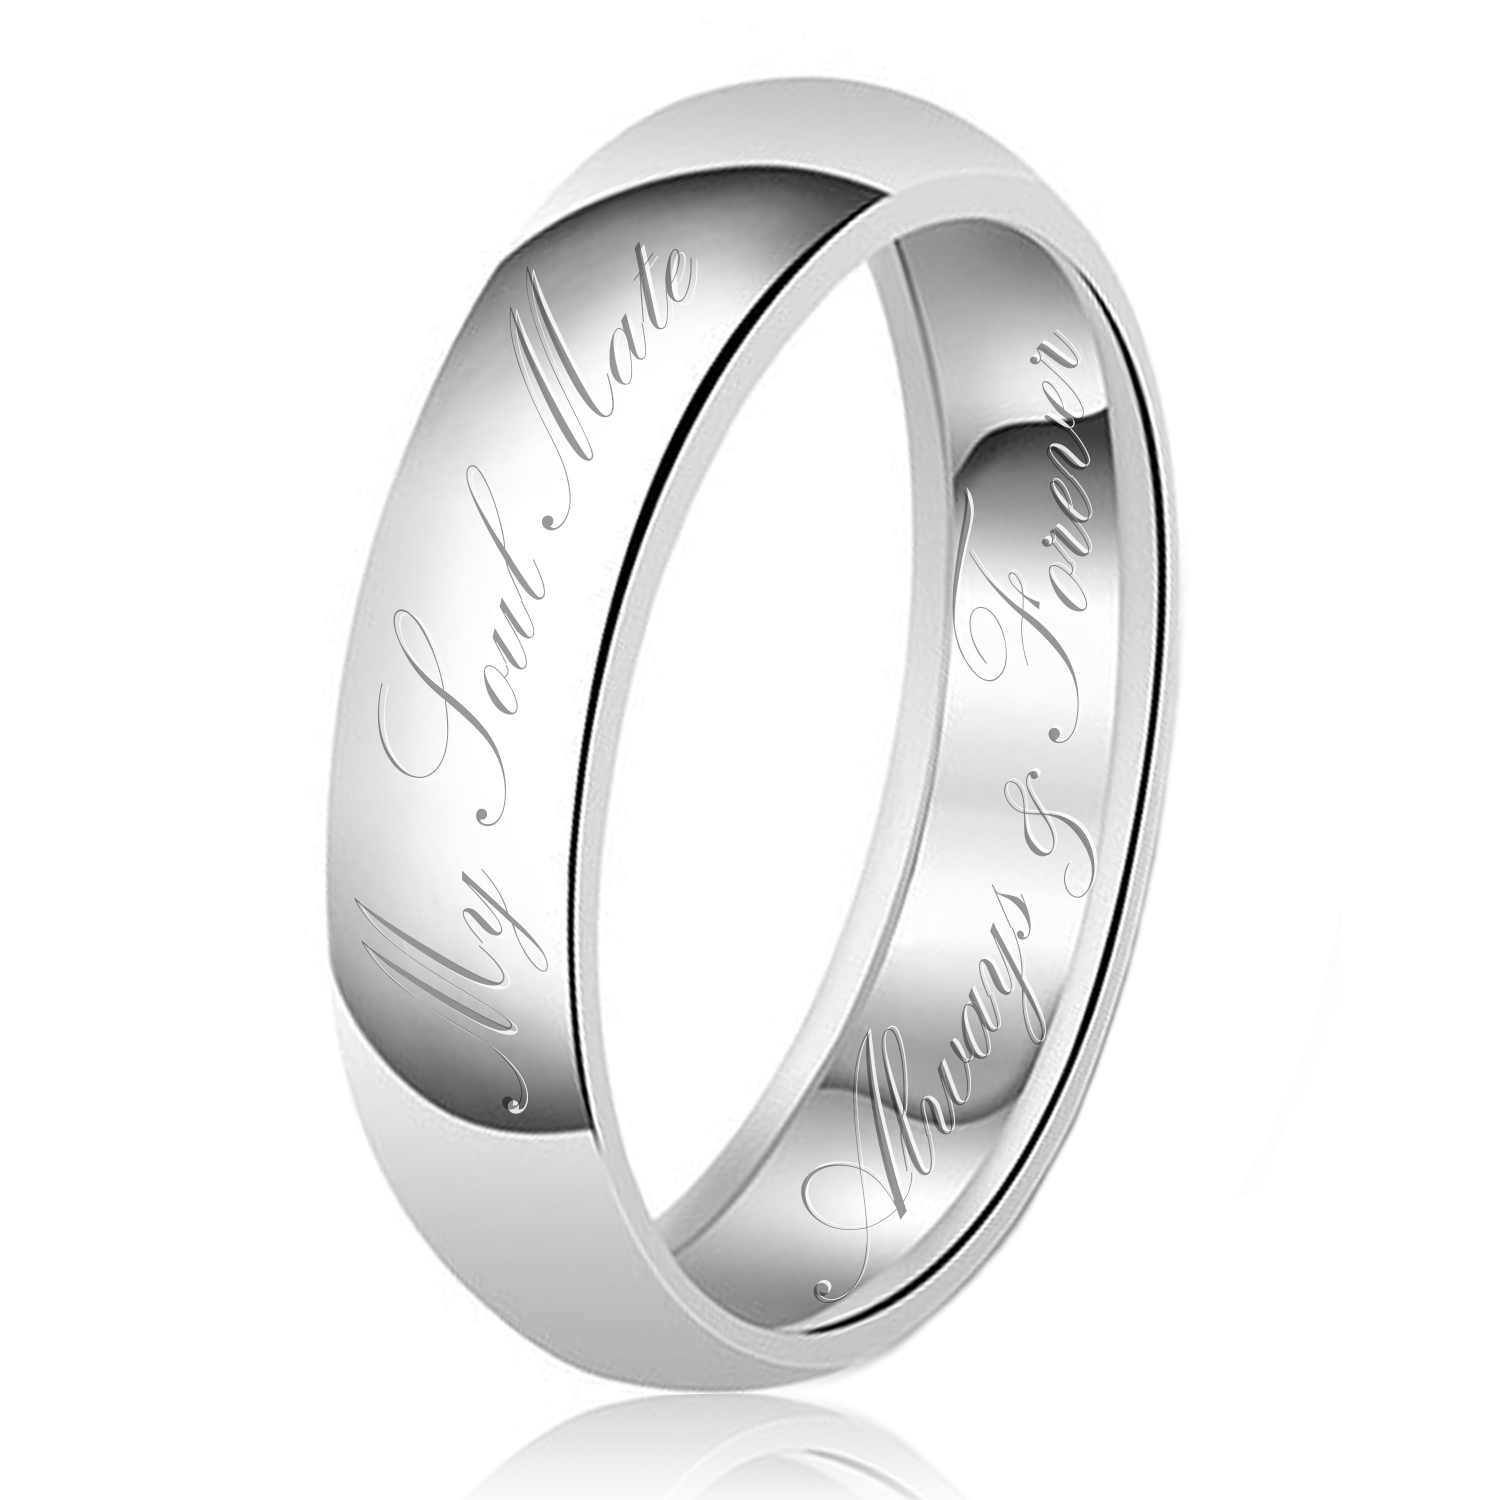 7mm My Soul Mate Always & Forever Engraved Classic Sterling Silver Plain Wedding Band Ring